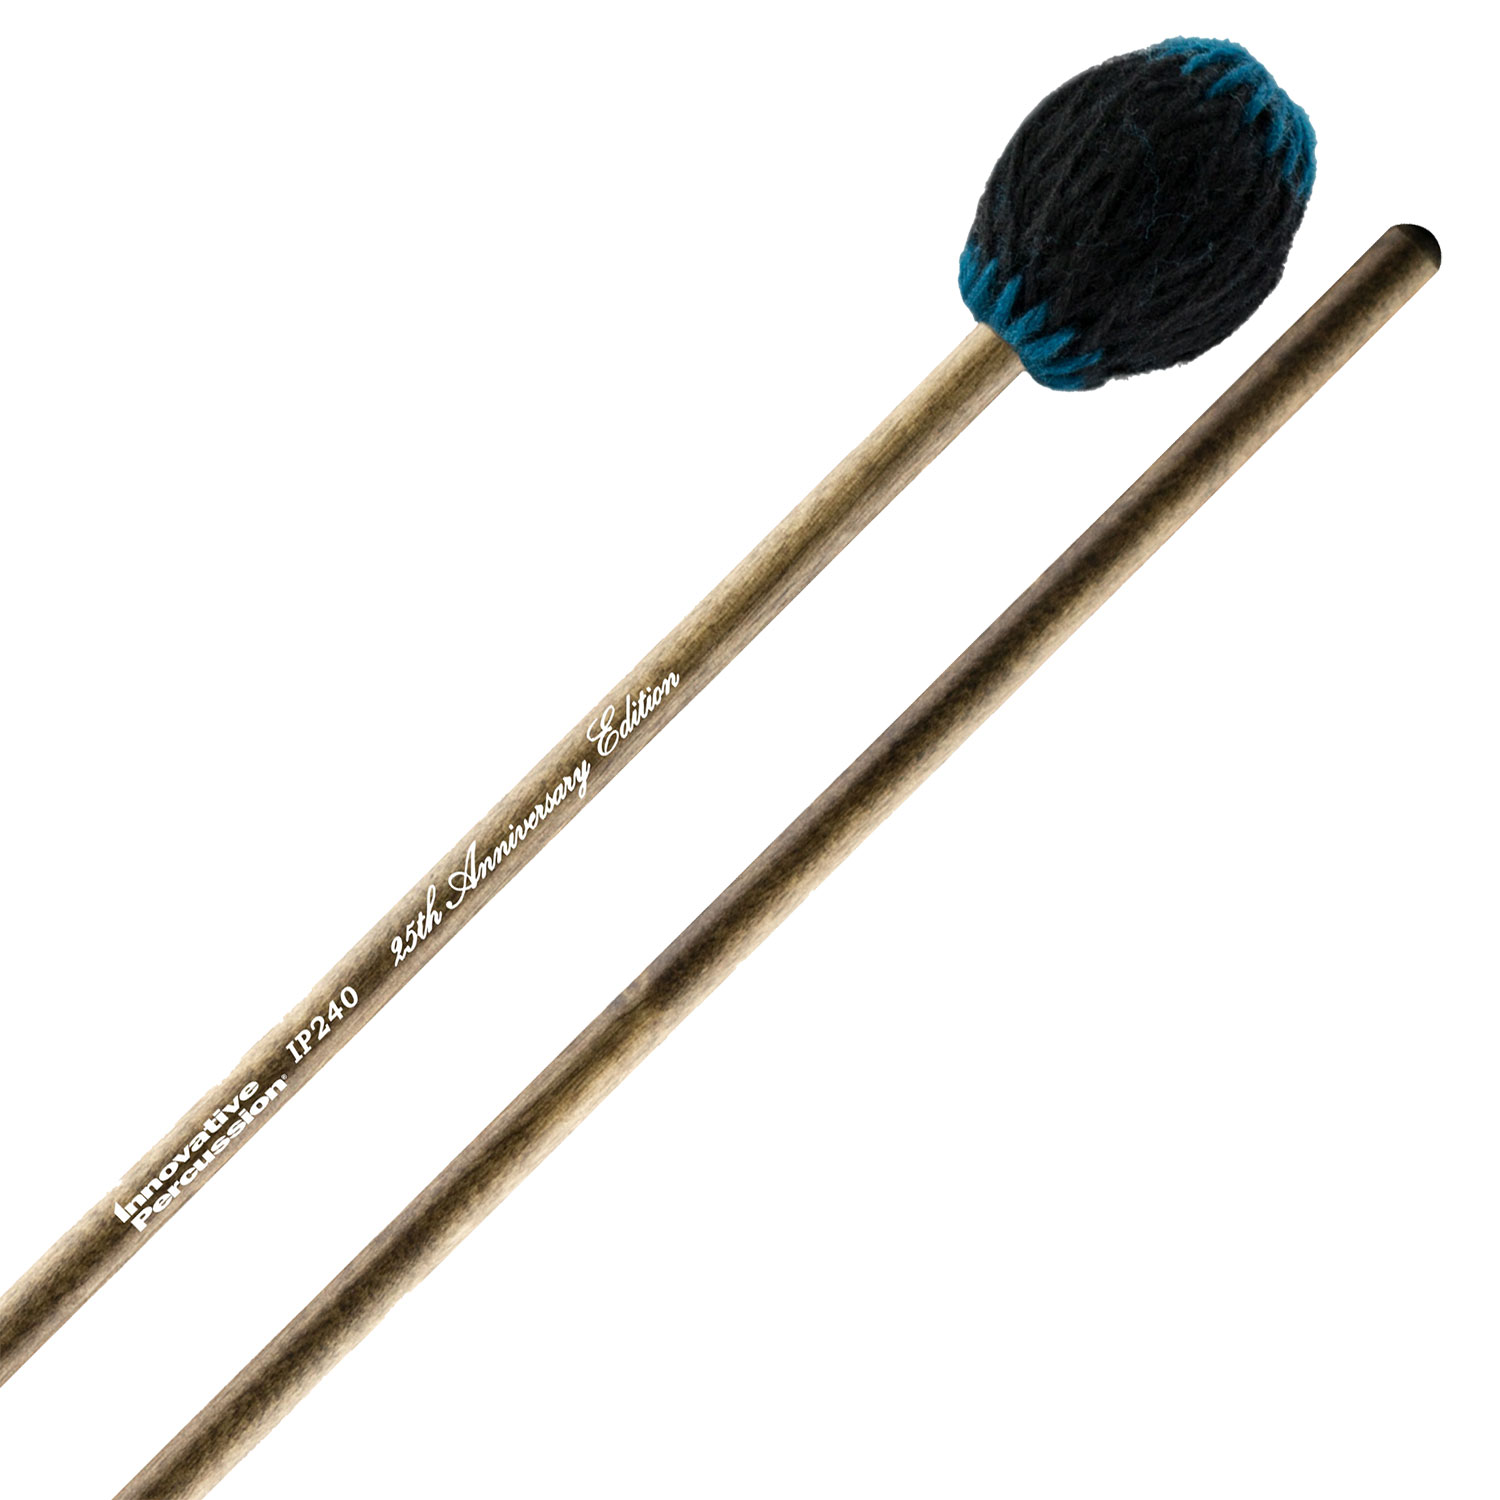 Innovative Percussion 25th Anniversary Soloist Series Medium Black Yarn Marimba Mallets with Dark-Stained Birch Handles